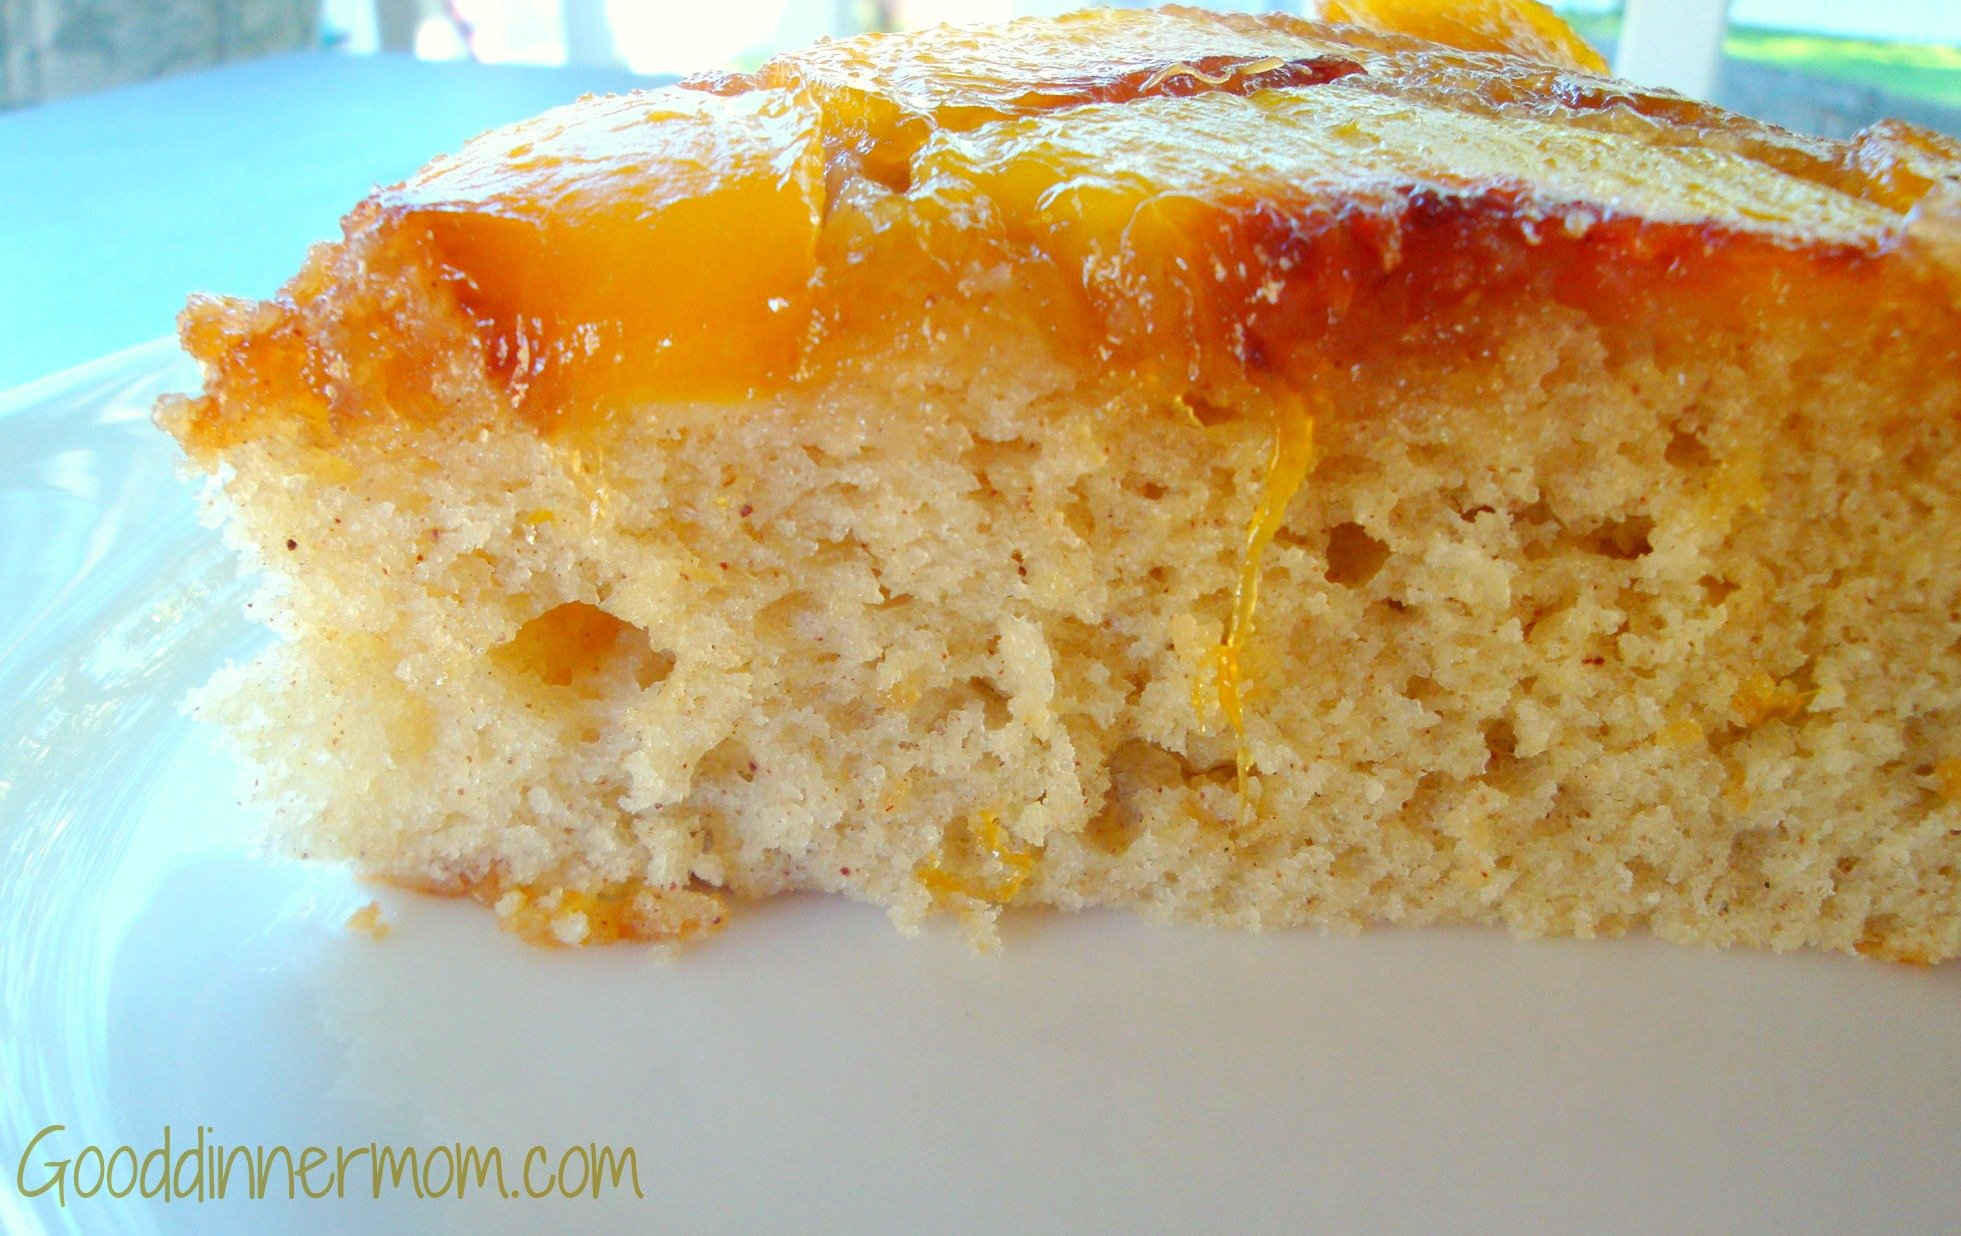 Good Dinner Mom | Peach Tatin or Peach Upside Down Cake - Good Dinner ...